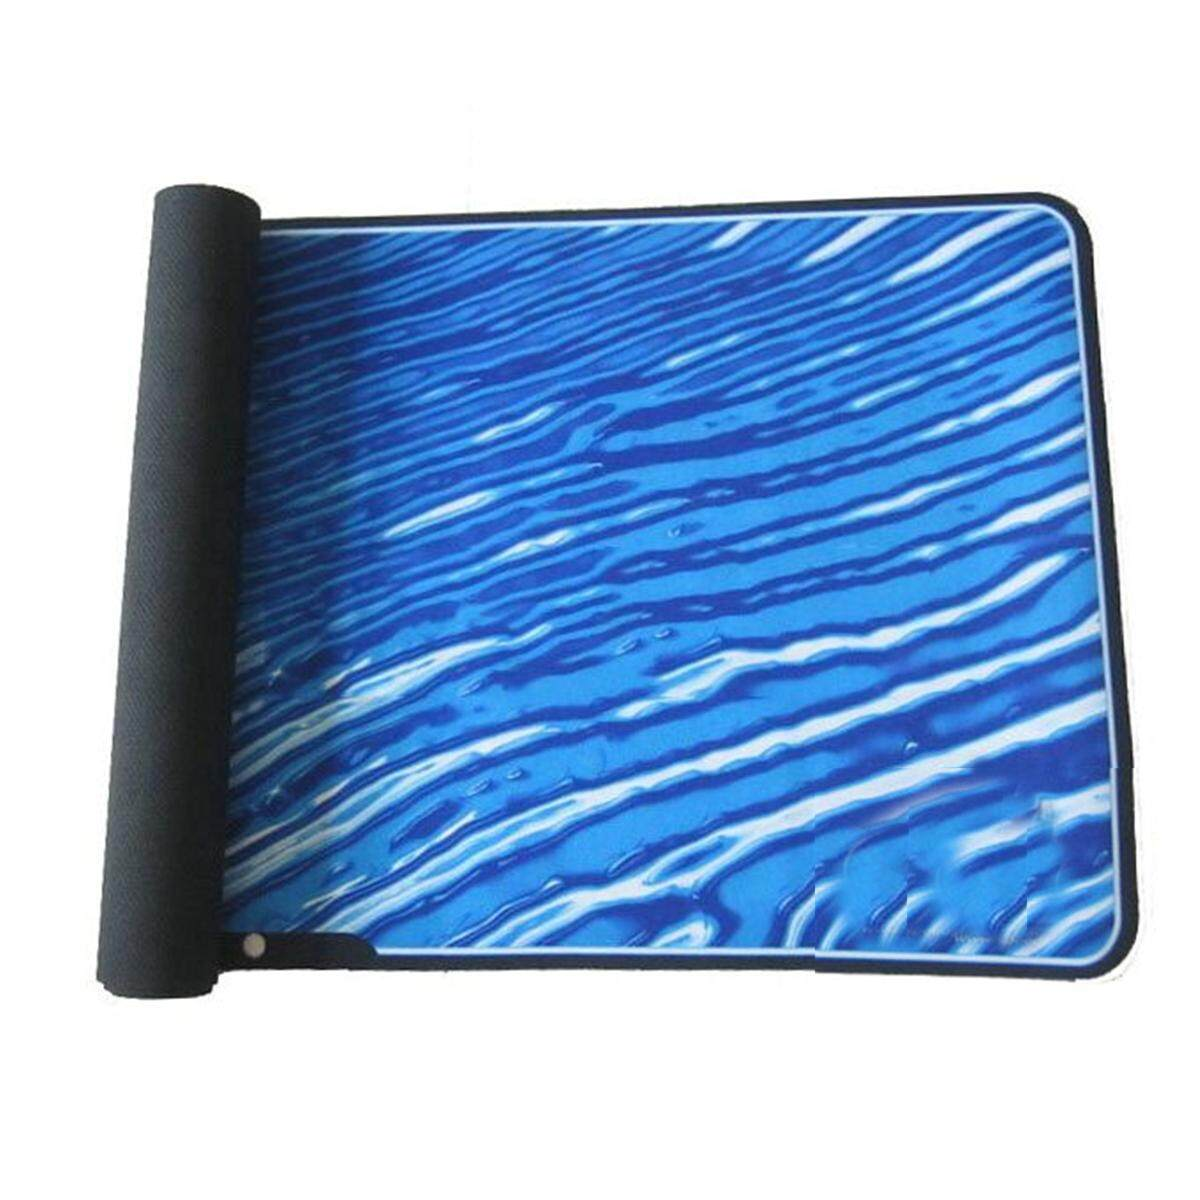 (photo)genuine Speed Stacks Stack Mat Speedcubing Pad Wssa Official Device (blue Wave) By Moonbeam.